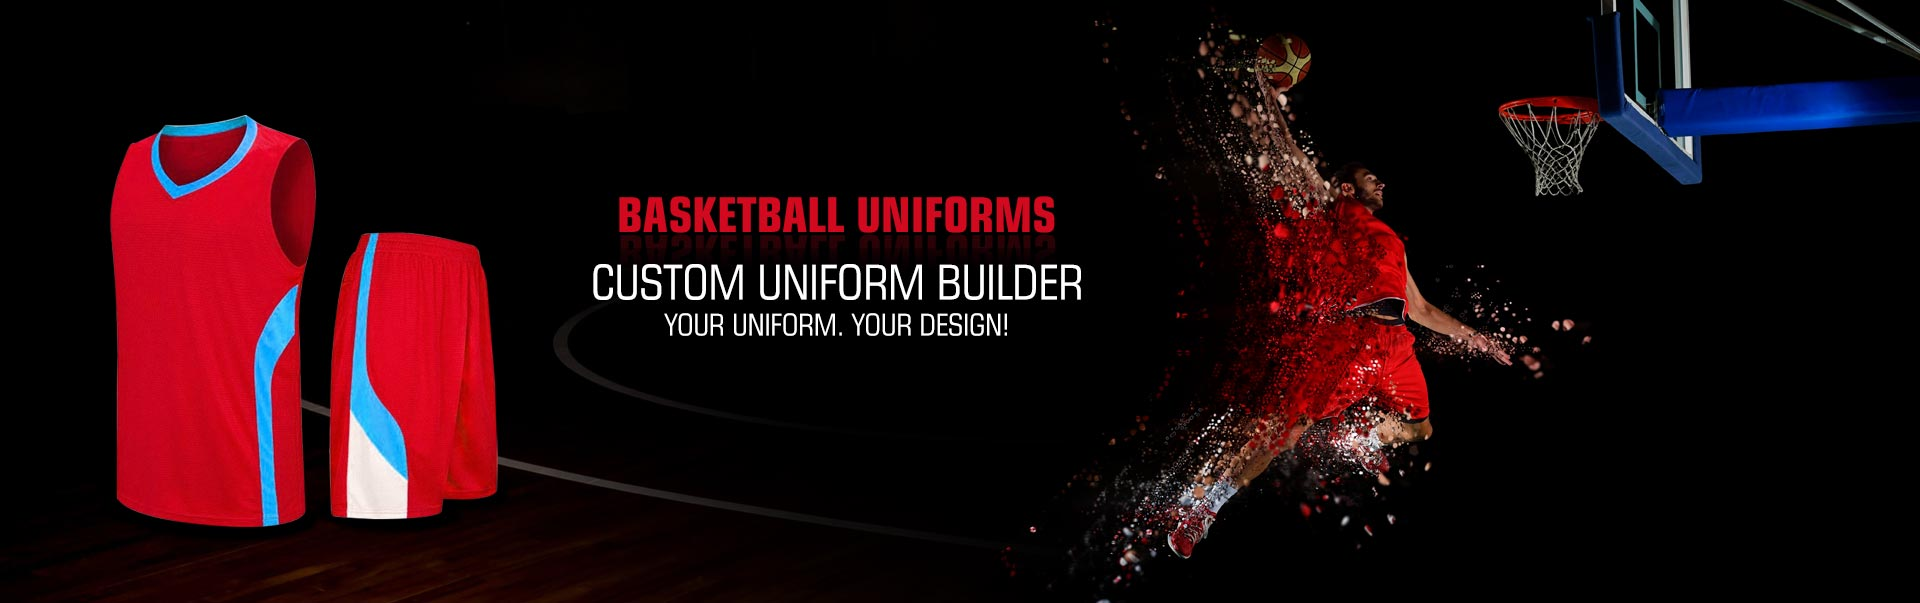 Basketball Uniforms Wholesaler, Suppliers in Obninsk